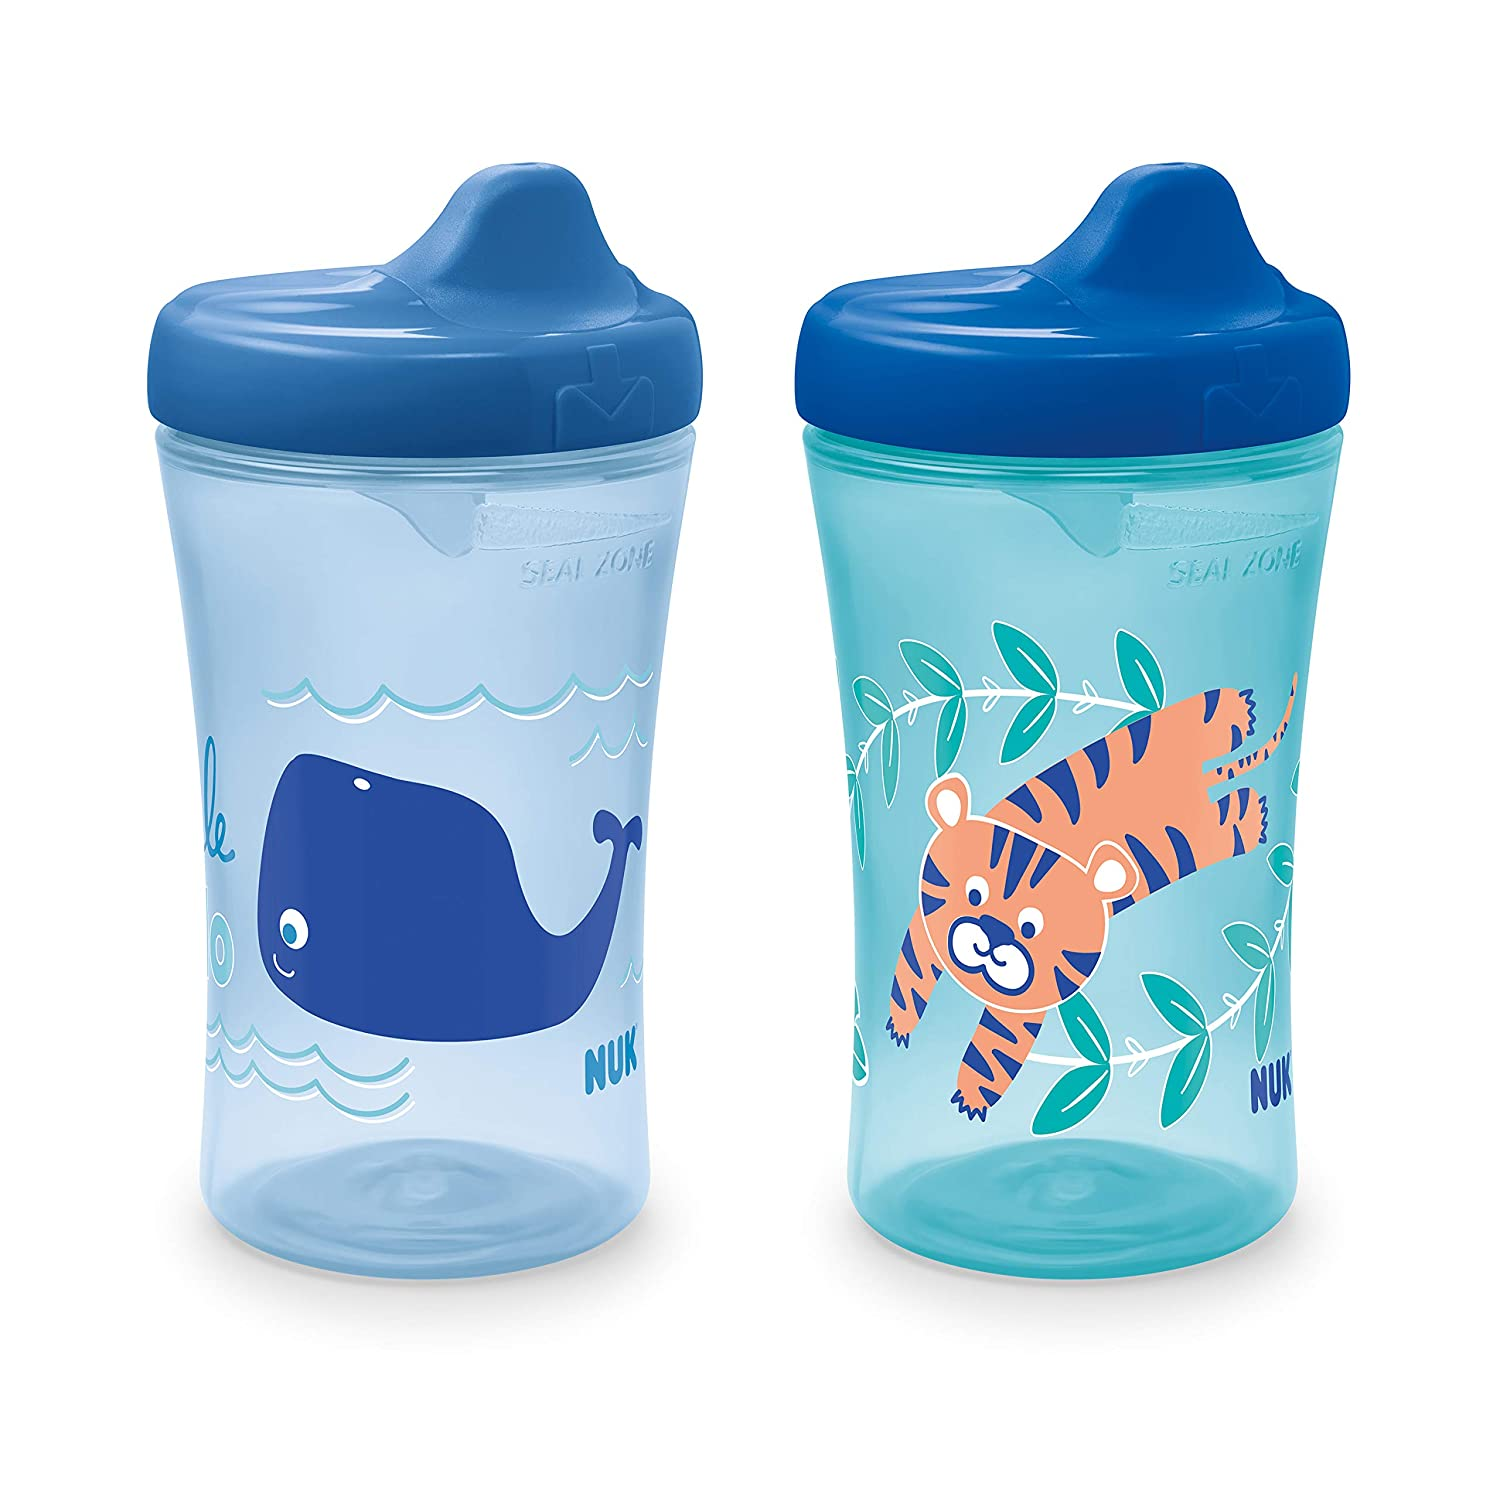 First Essentials by NUK Sippy Max 83% OFF Hard Cup Spout Max 77% OFF